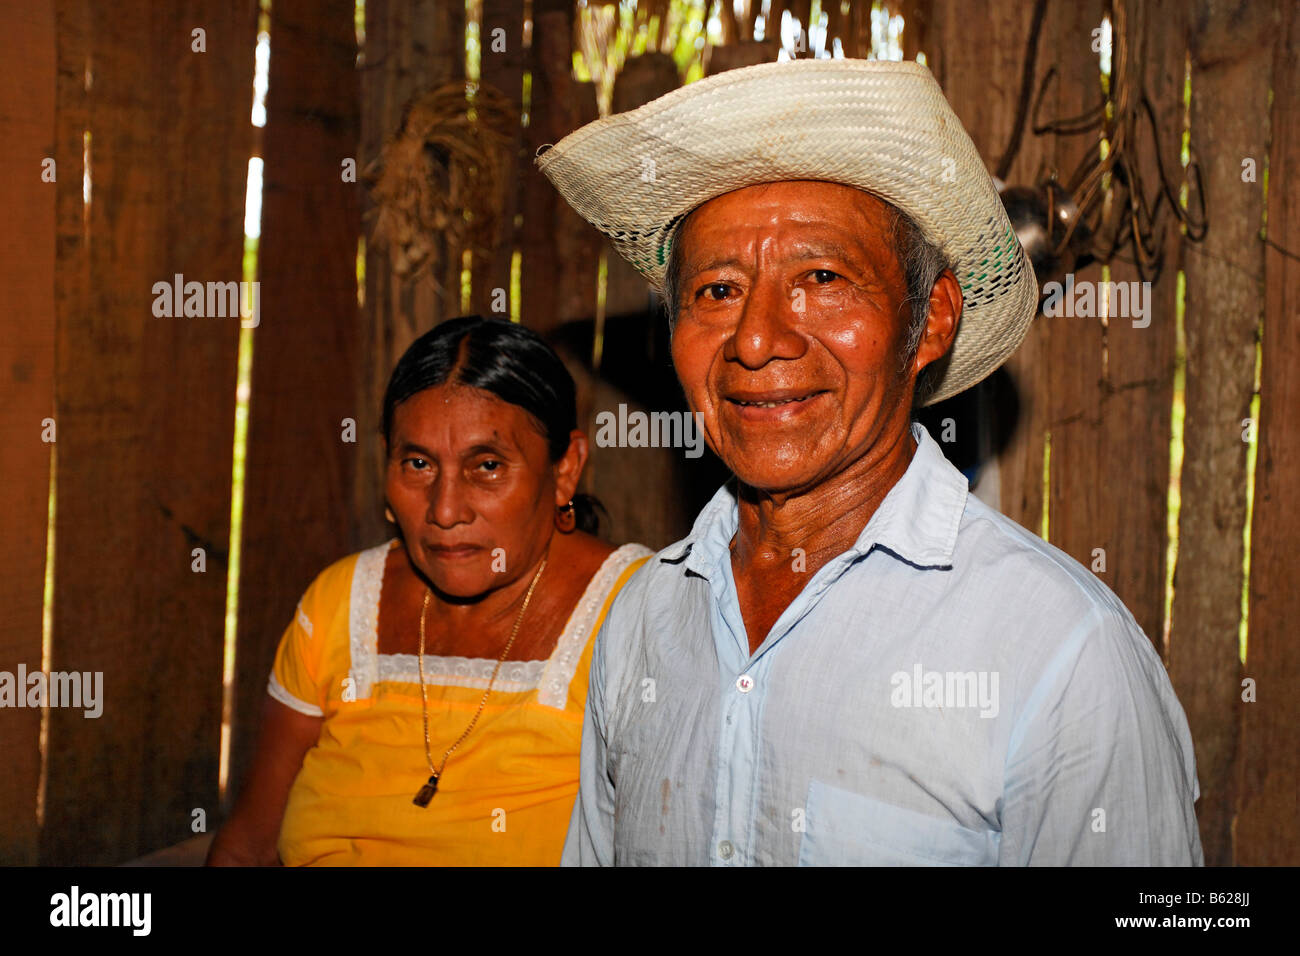 Married couple, sad-looking Mayan woman, proud smiling man, straw hat, residents, Punta Gorda, Belize, Central America Stock Photo